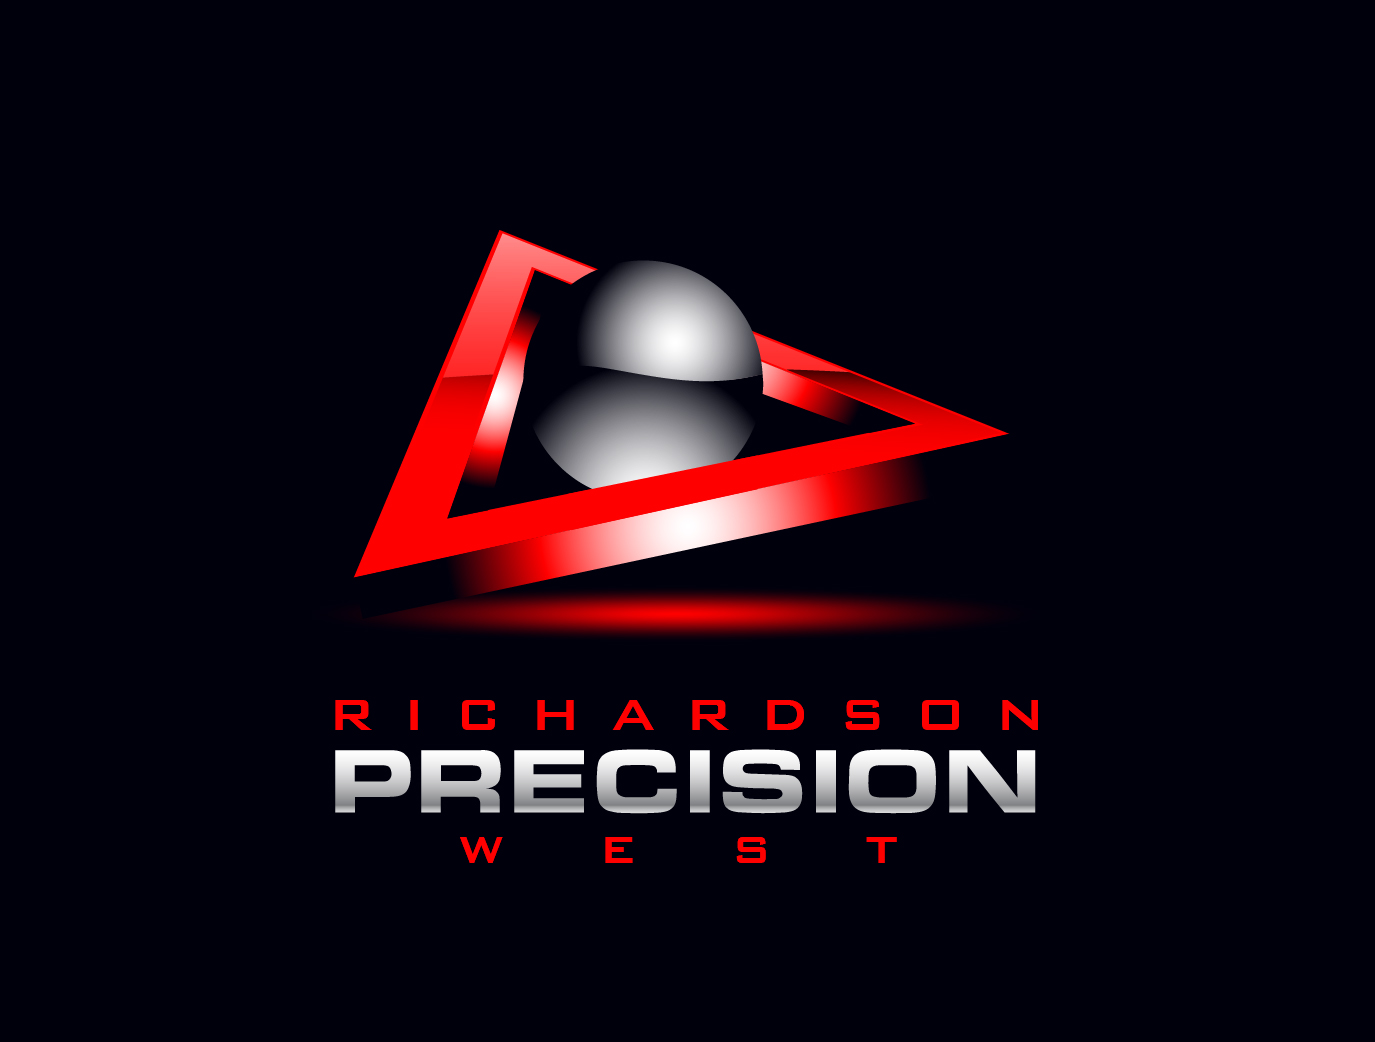 Richardson Precision West logo